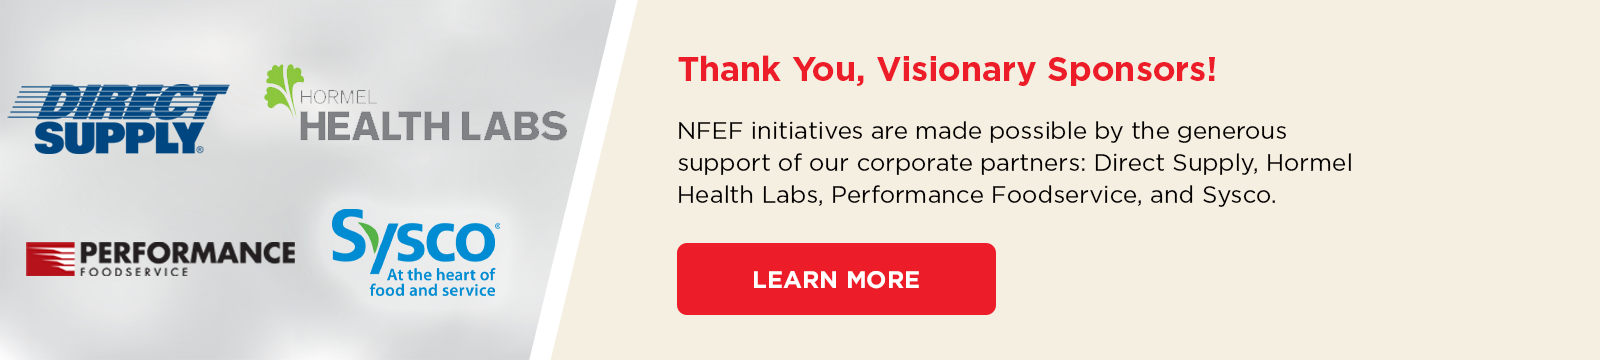 Thank you, Corporate Partners!